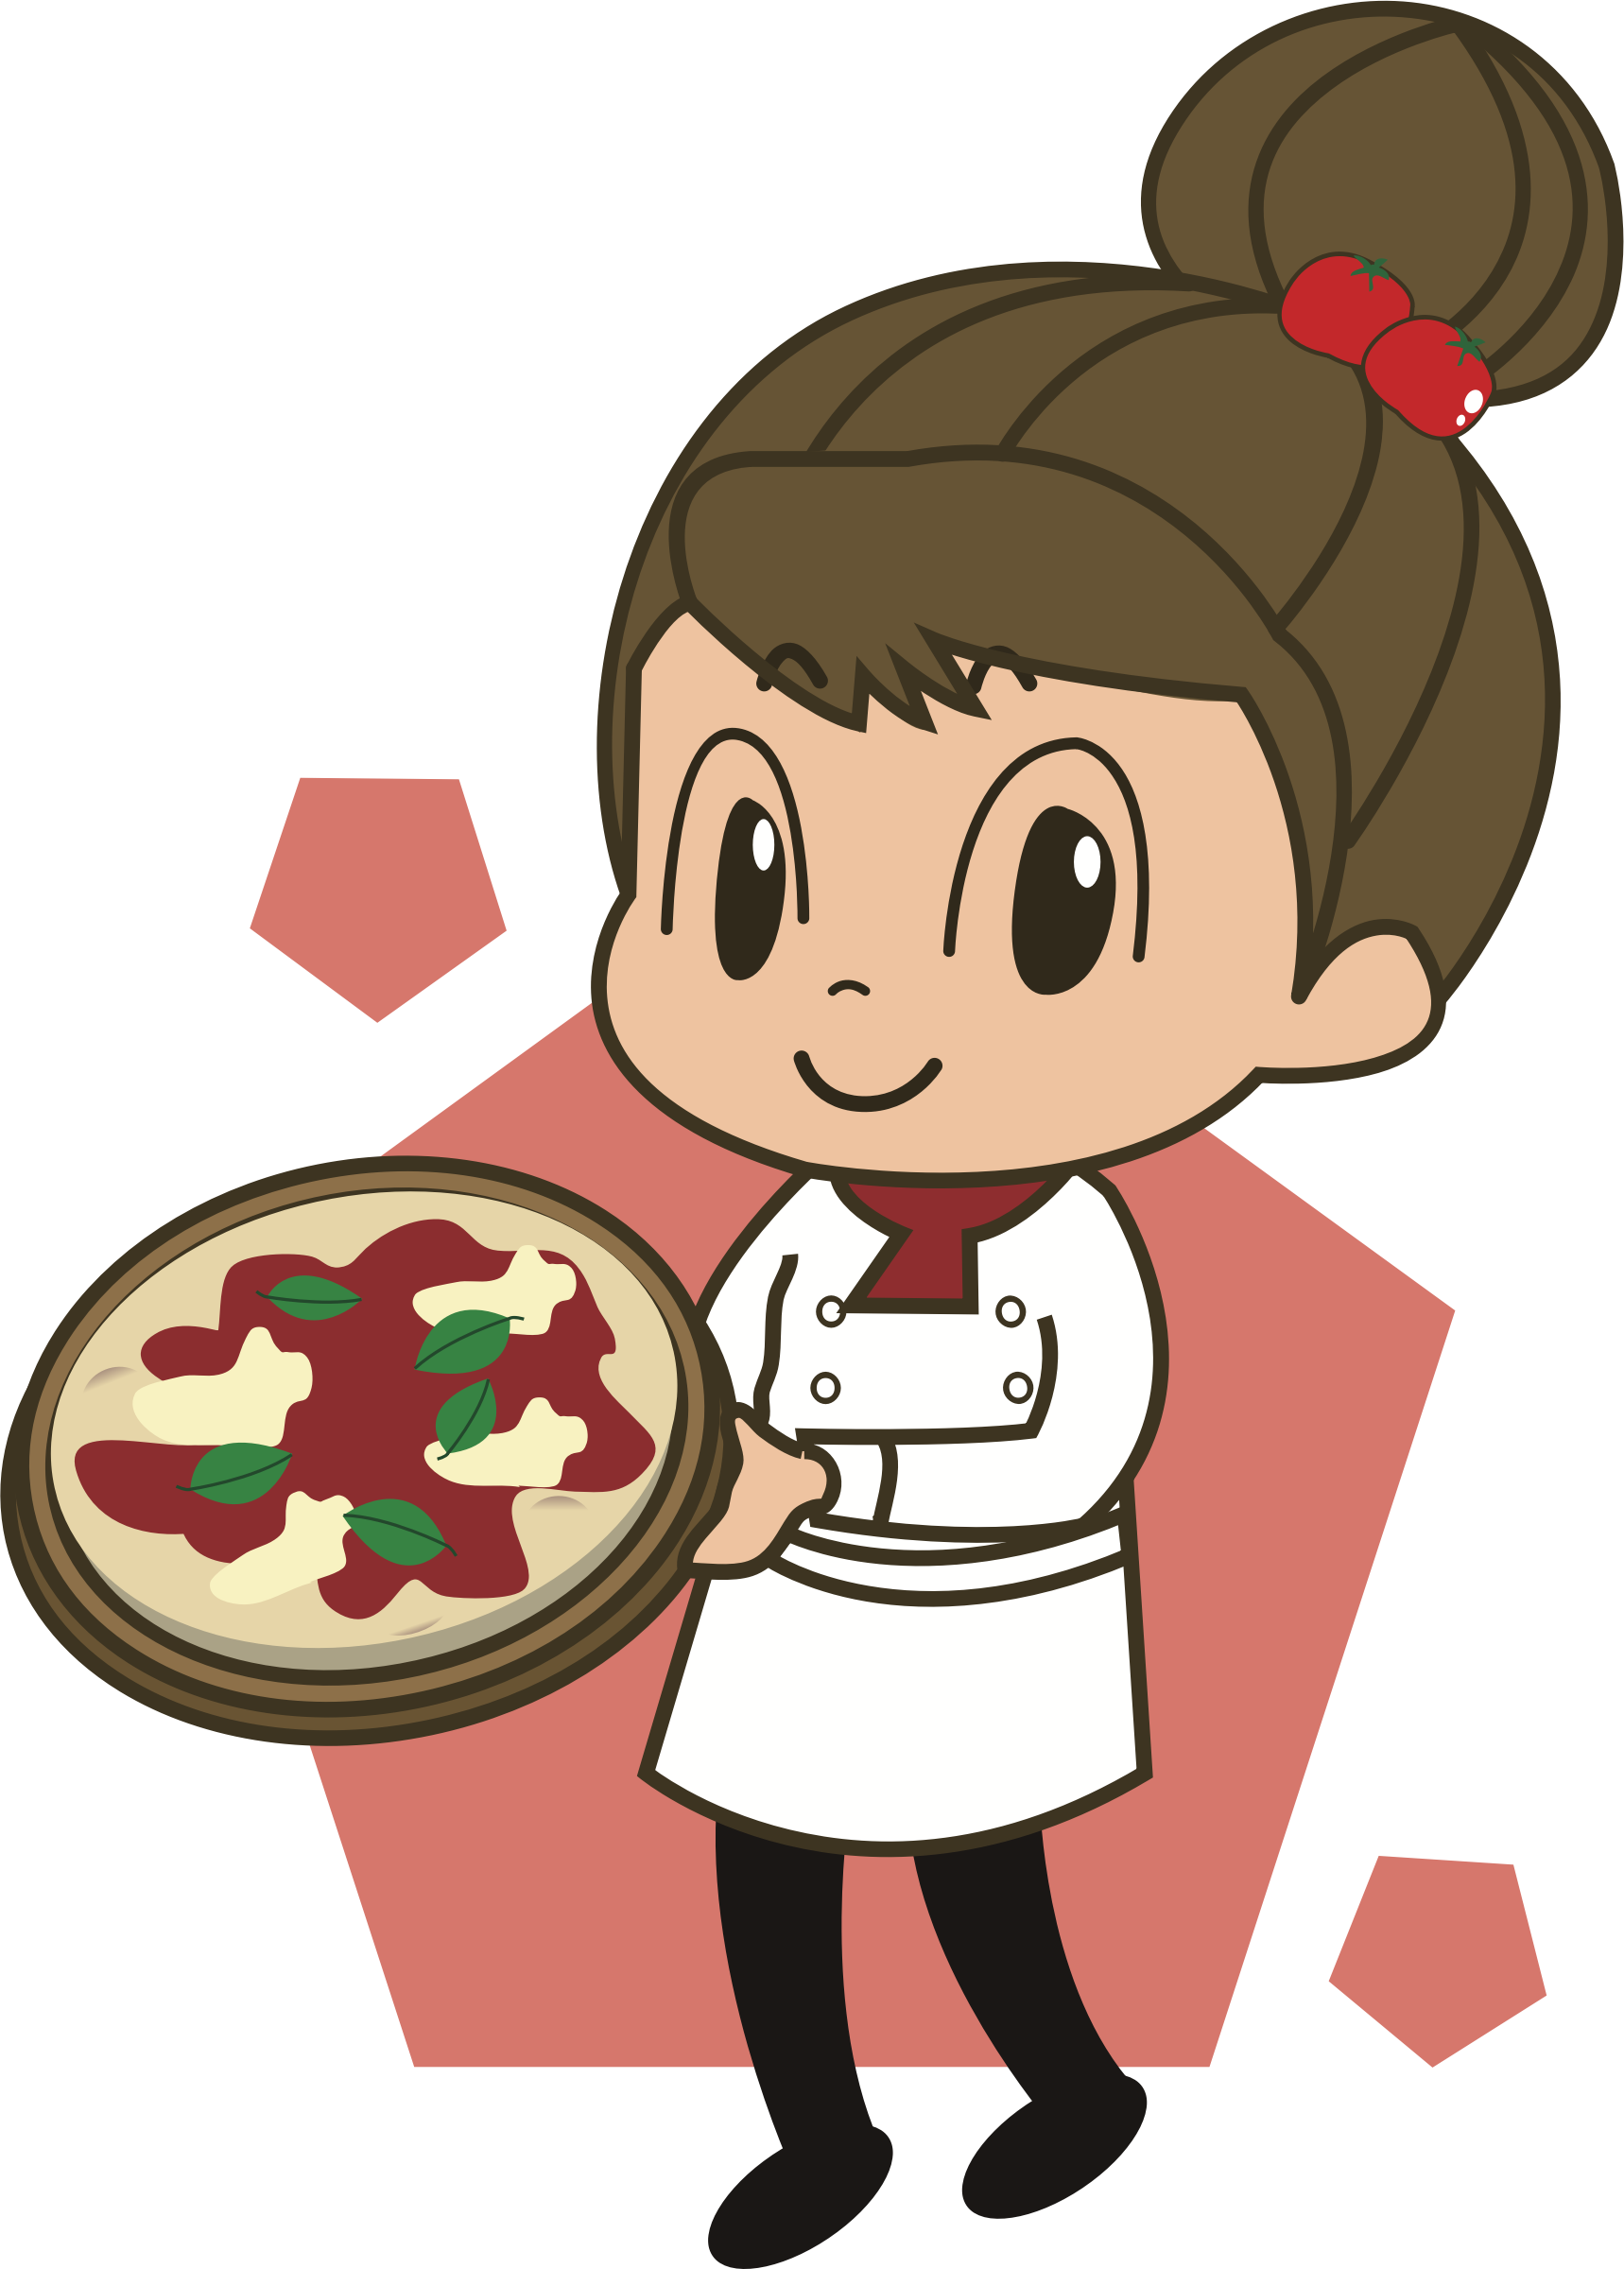 Lady clipart pizza. Big image png